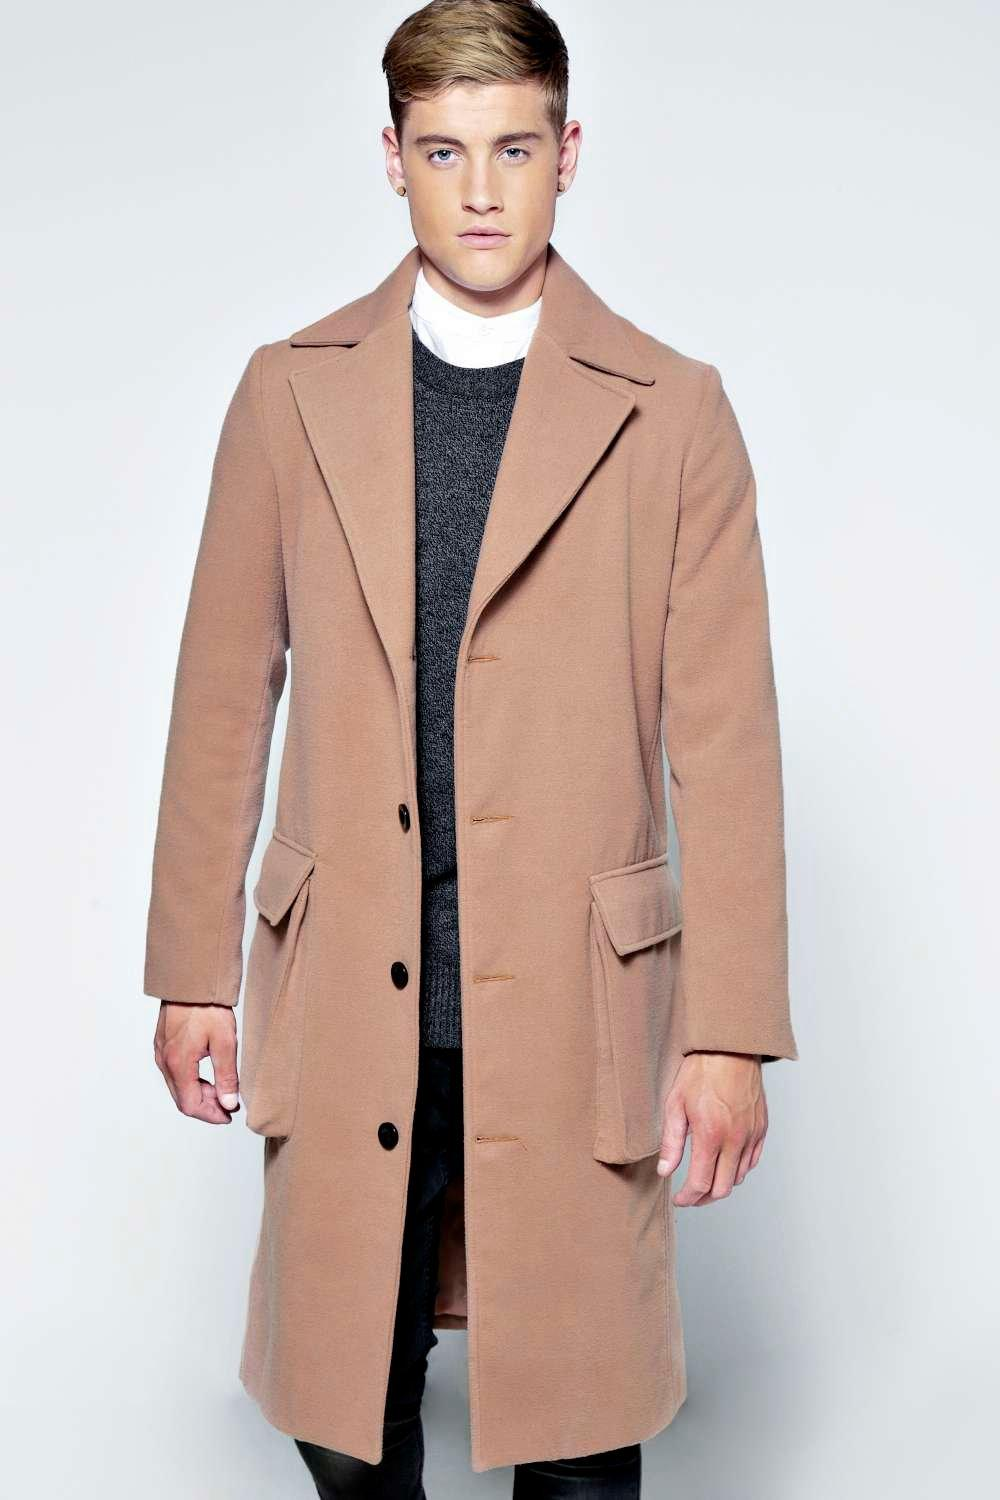 Long Woollen Coat with Bellow Pockets